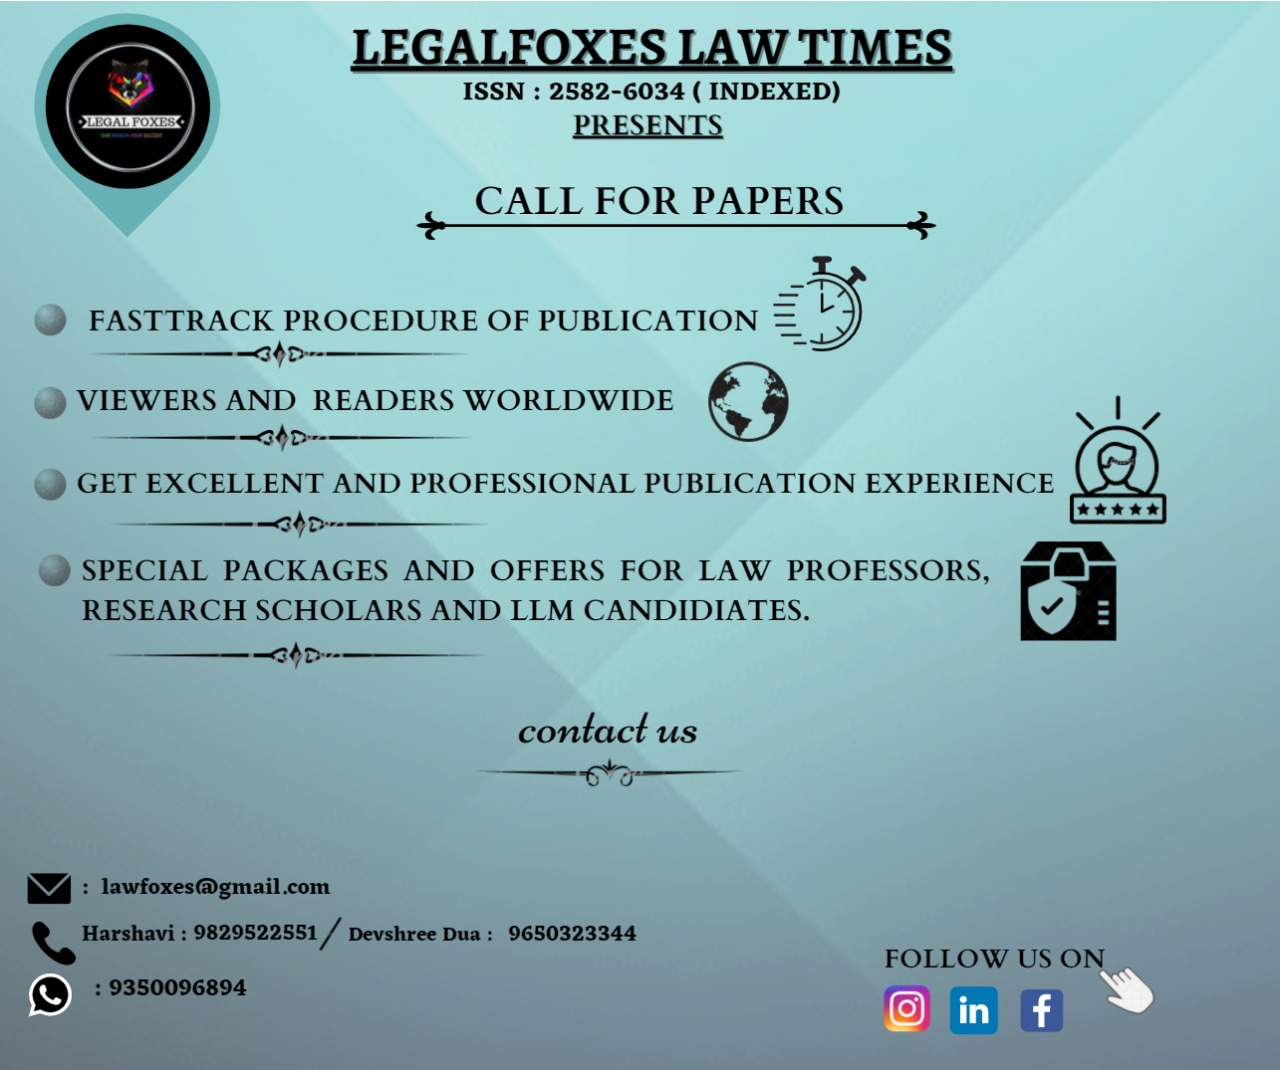 Legal Foxes Law Times Journal